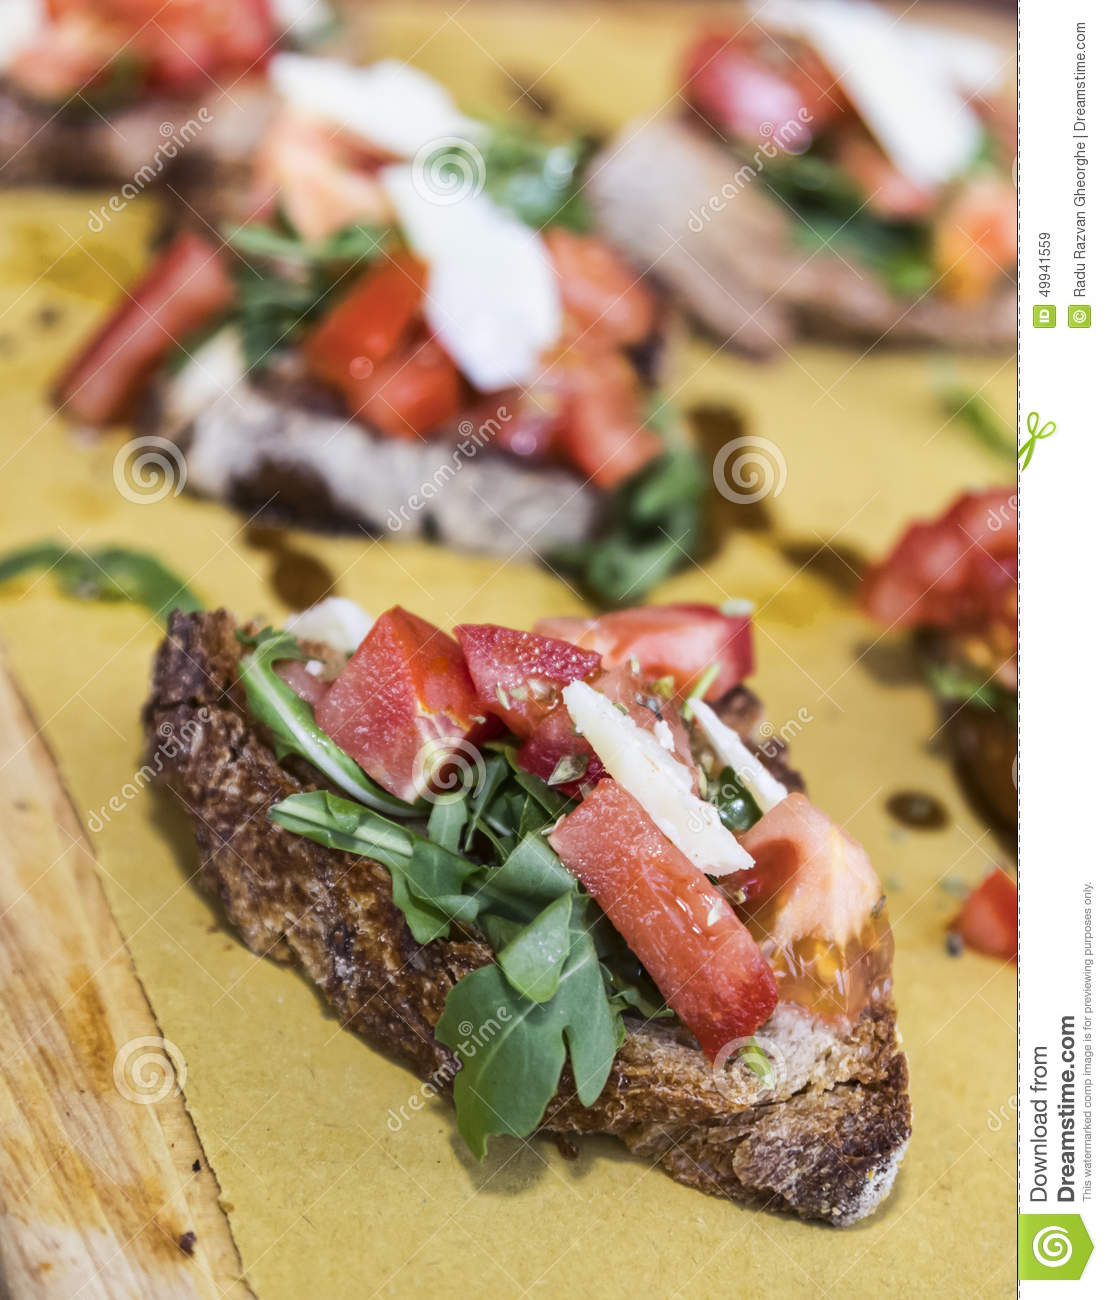 ... bruschetta with fresh tomatoes,mozzarella,garlic,basil and olive oil